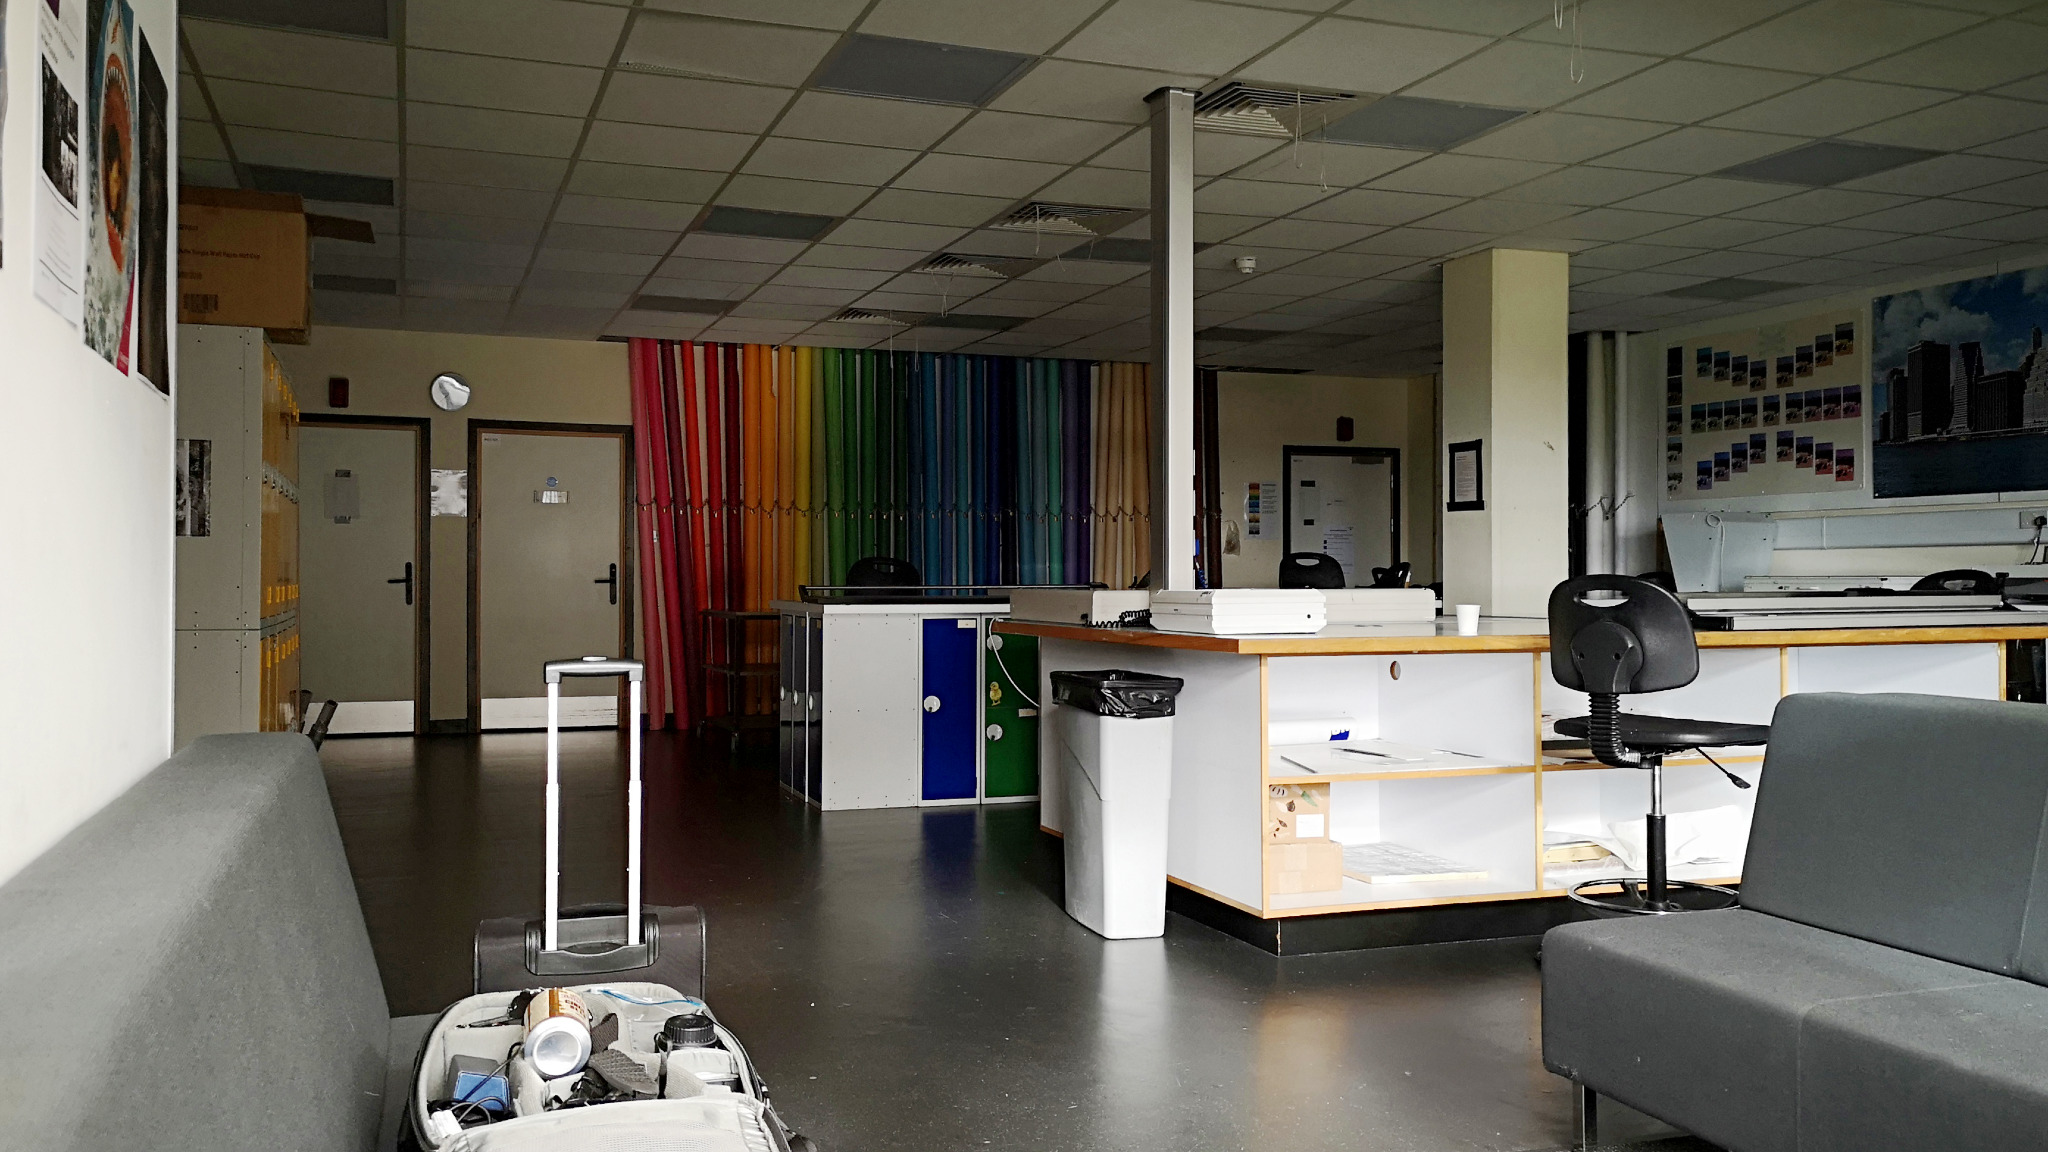 Entrance to the Institute of Photography's development and printing laboratories, Falmouth University. (before the lights and equipment are switched on). Taken by Graham Land, March, 2019